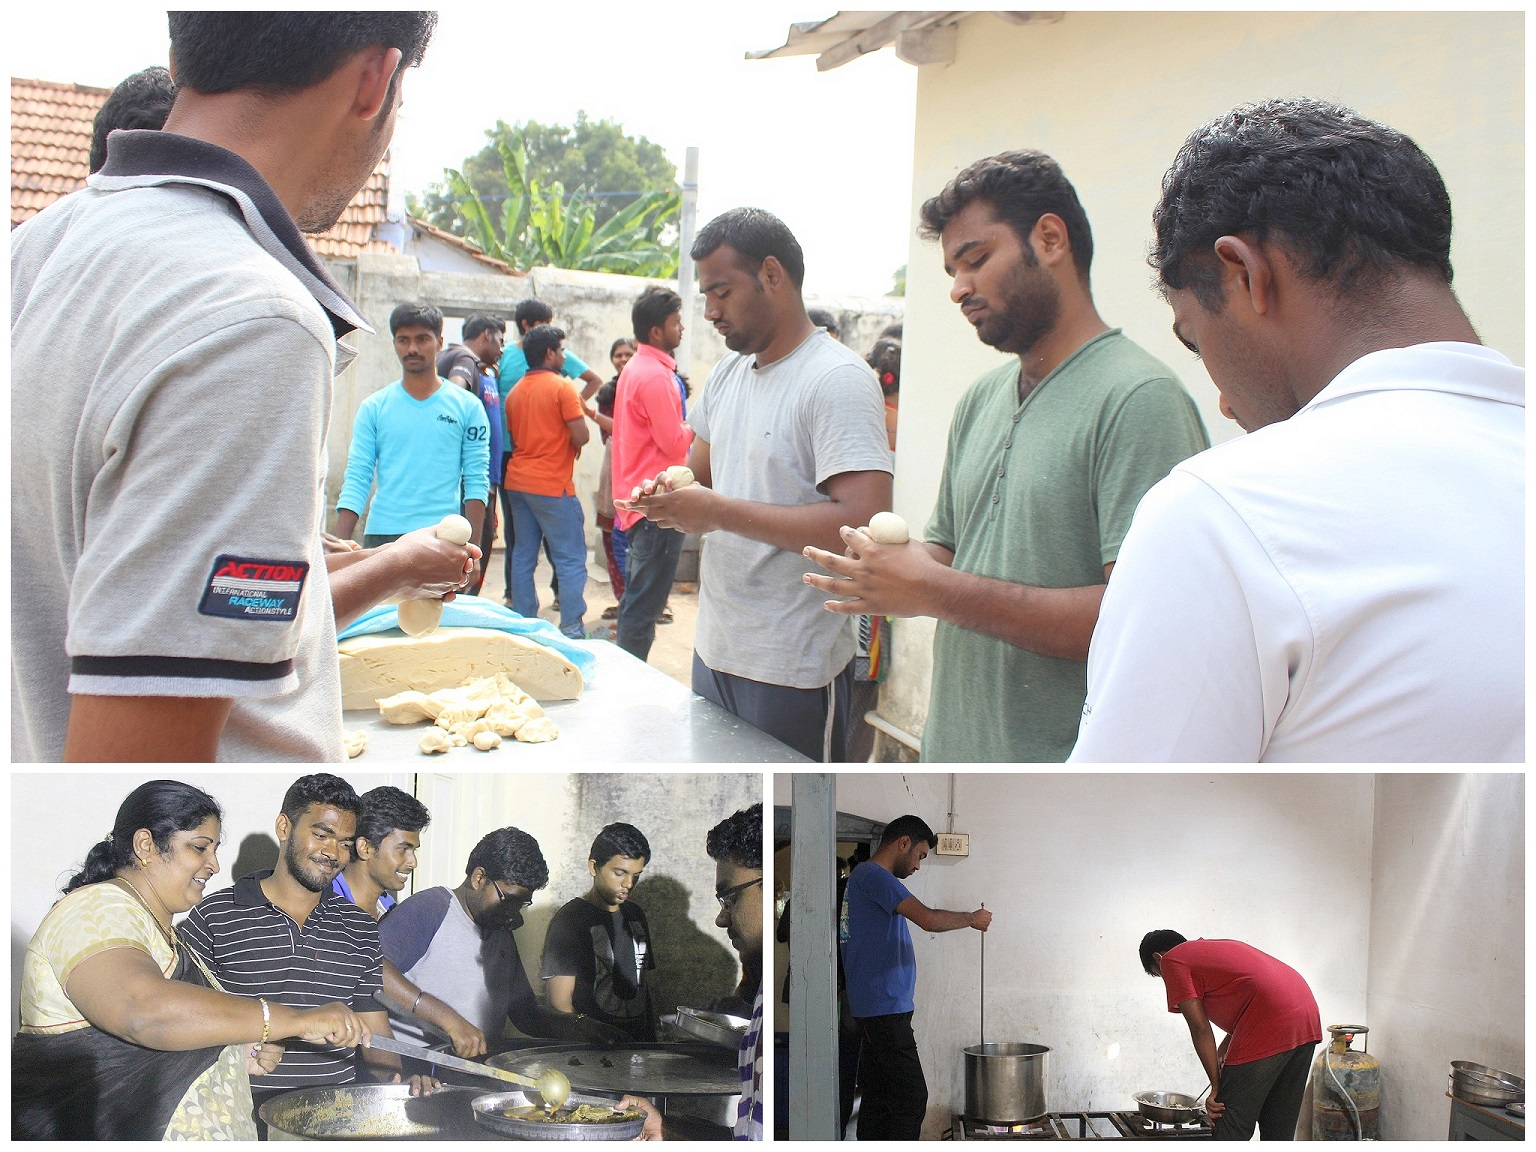 Clockwise from top: Catering team preparing breakfast, Food on time - Check, Dr.G.Menaka helping with dinner in the camp